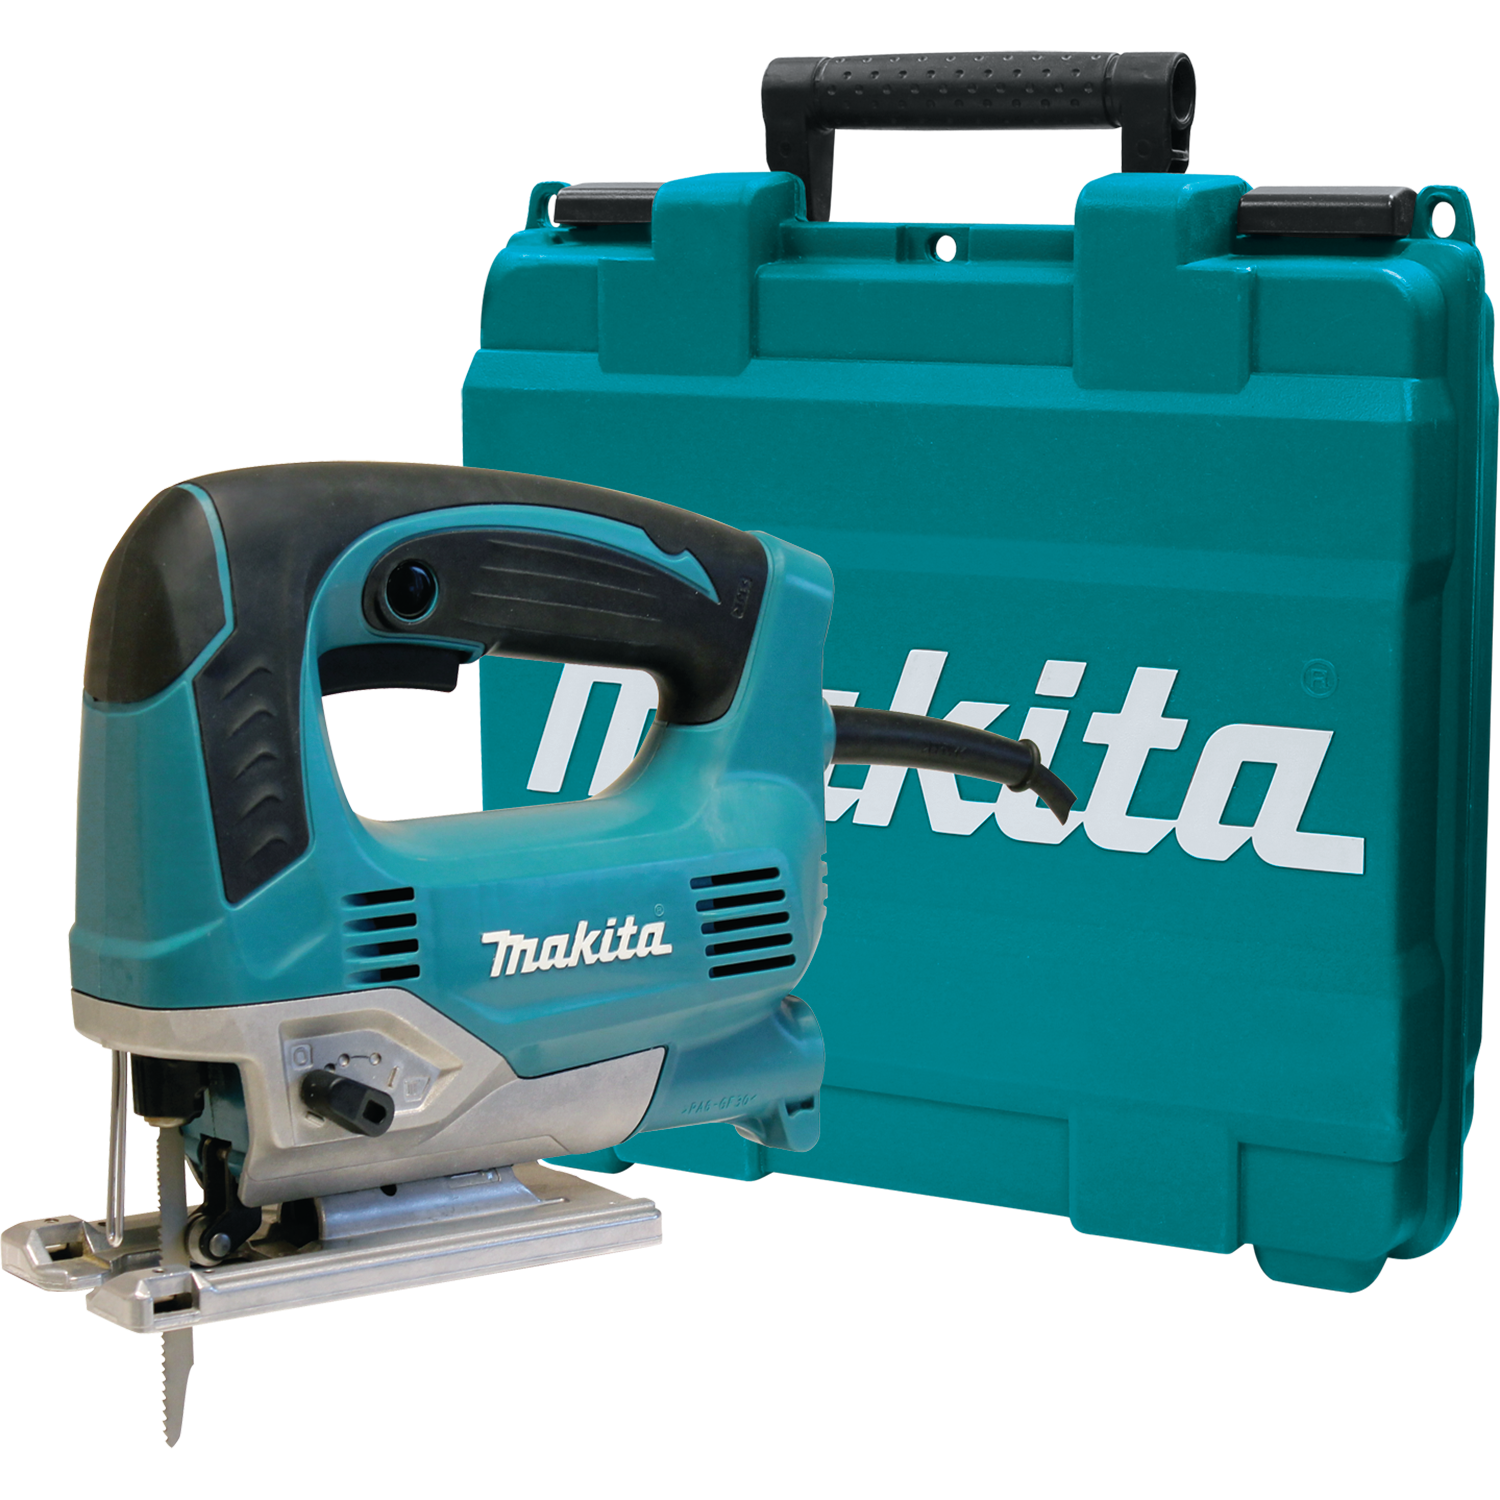 Makita usa product details jv0600k jv0600k greentooth